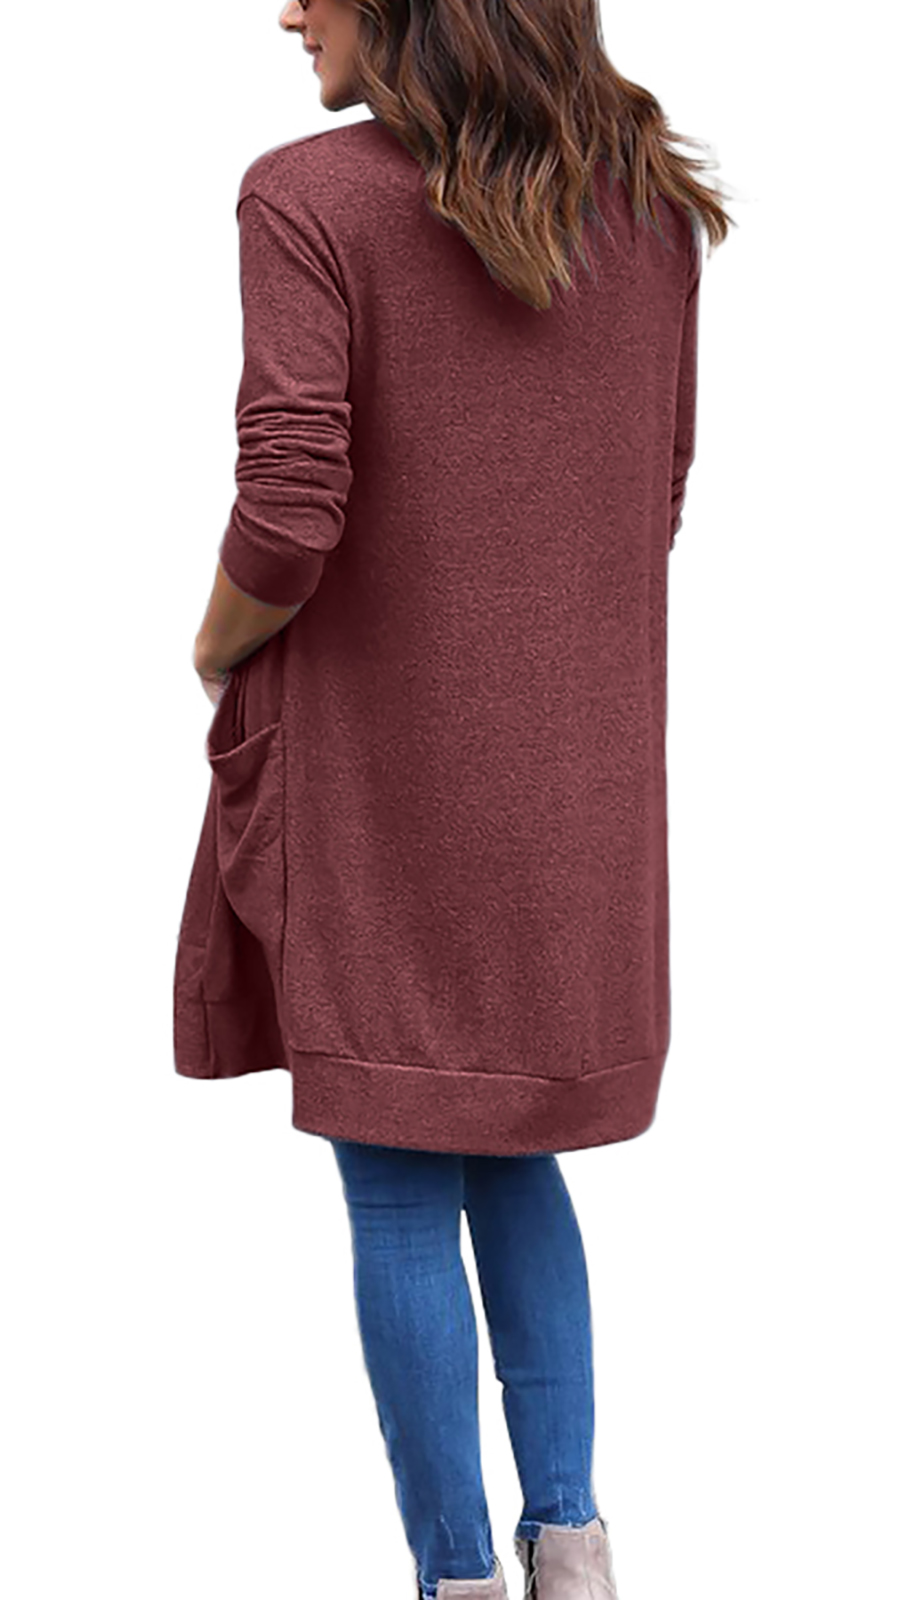 //cdn.affectcloud.com/feelingirldress/upload/imgs/Women_Clothing/Sweaters_Cardigans/LB110489/LB110489-202001065e12e5889ac1a.jpg